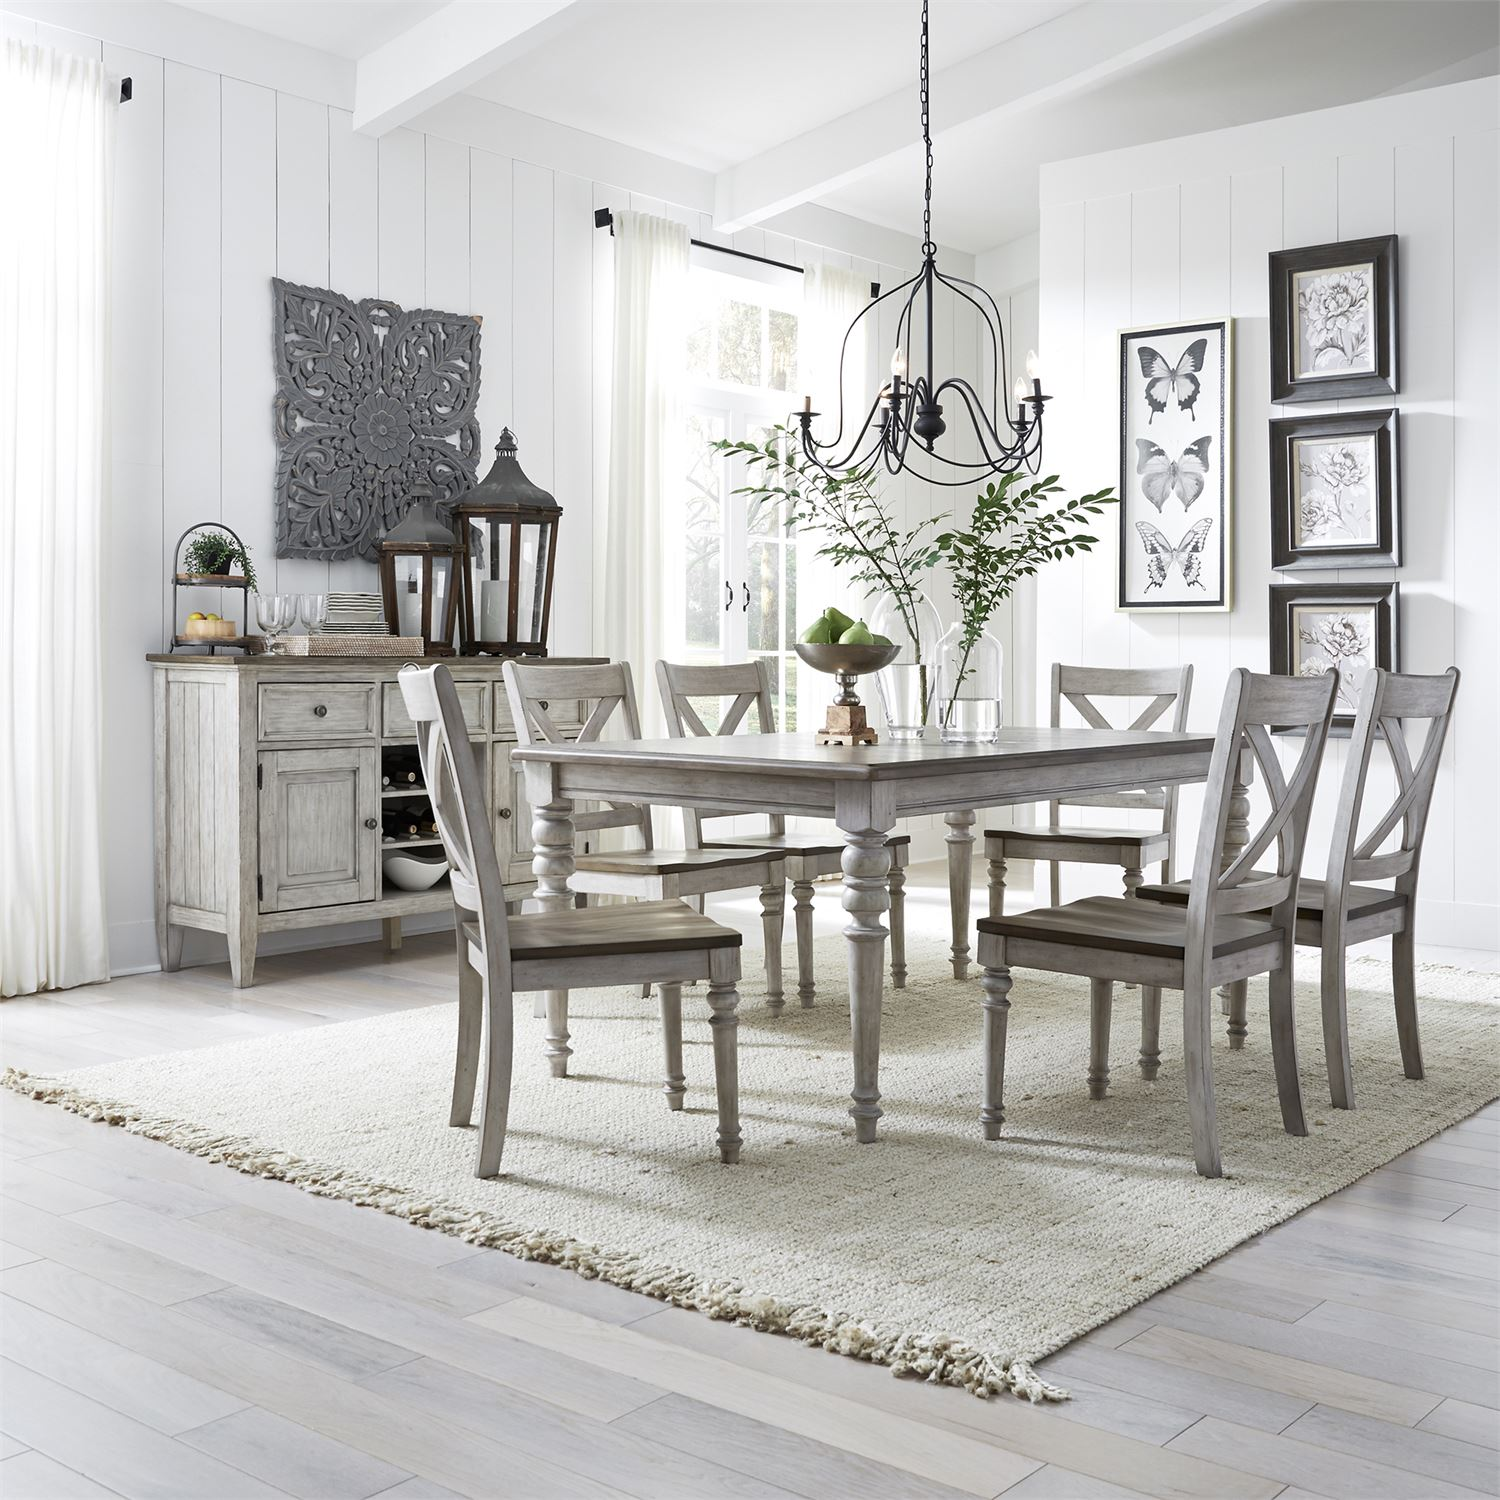 Liberty Furniture Cottage Lane Rectangular Dining Room Set in Antique White  with Weathered Gray